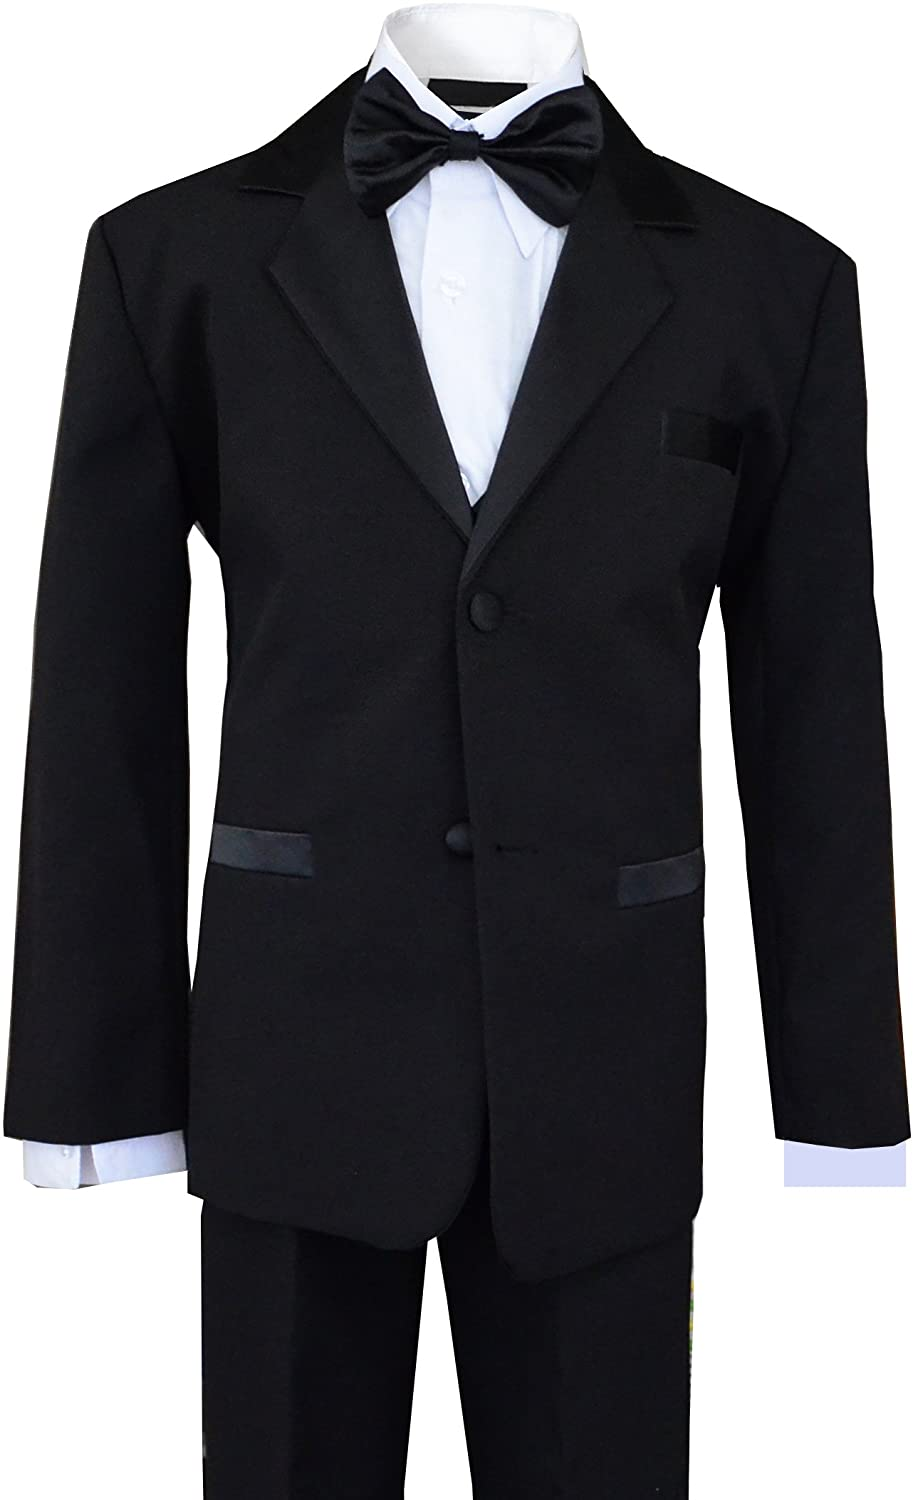 1de026b0919 Amazon.com  Boys Tuxedos in Black with Royal Blue Bow Tie and Black Bow Tie   Clothing